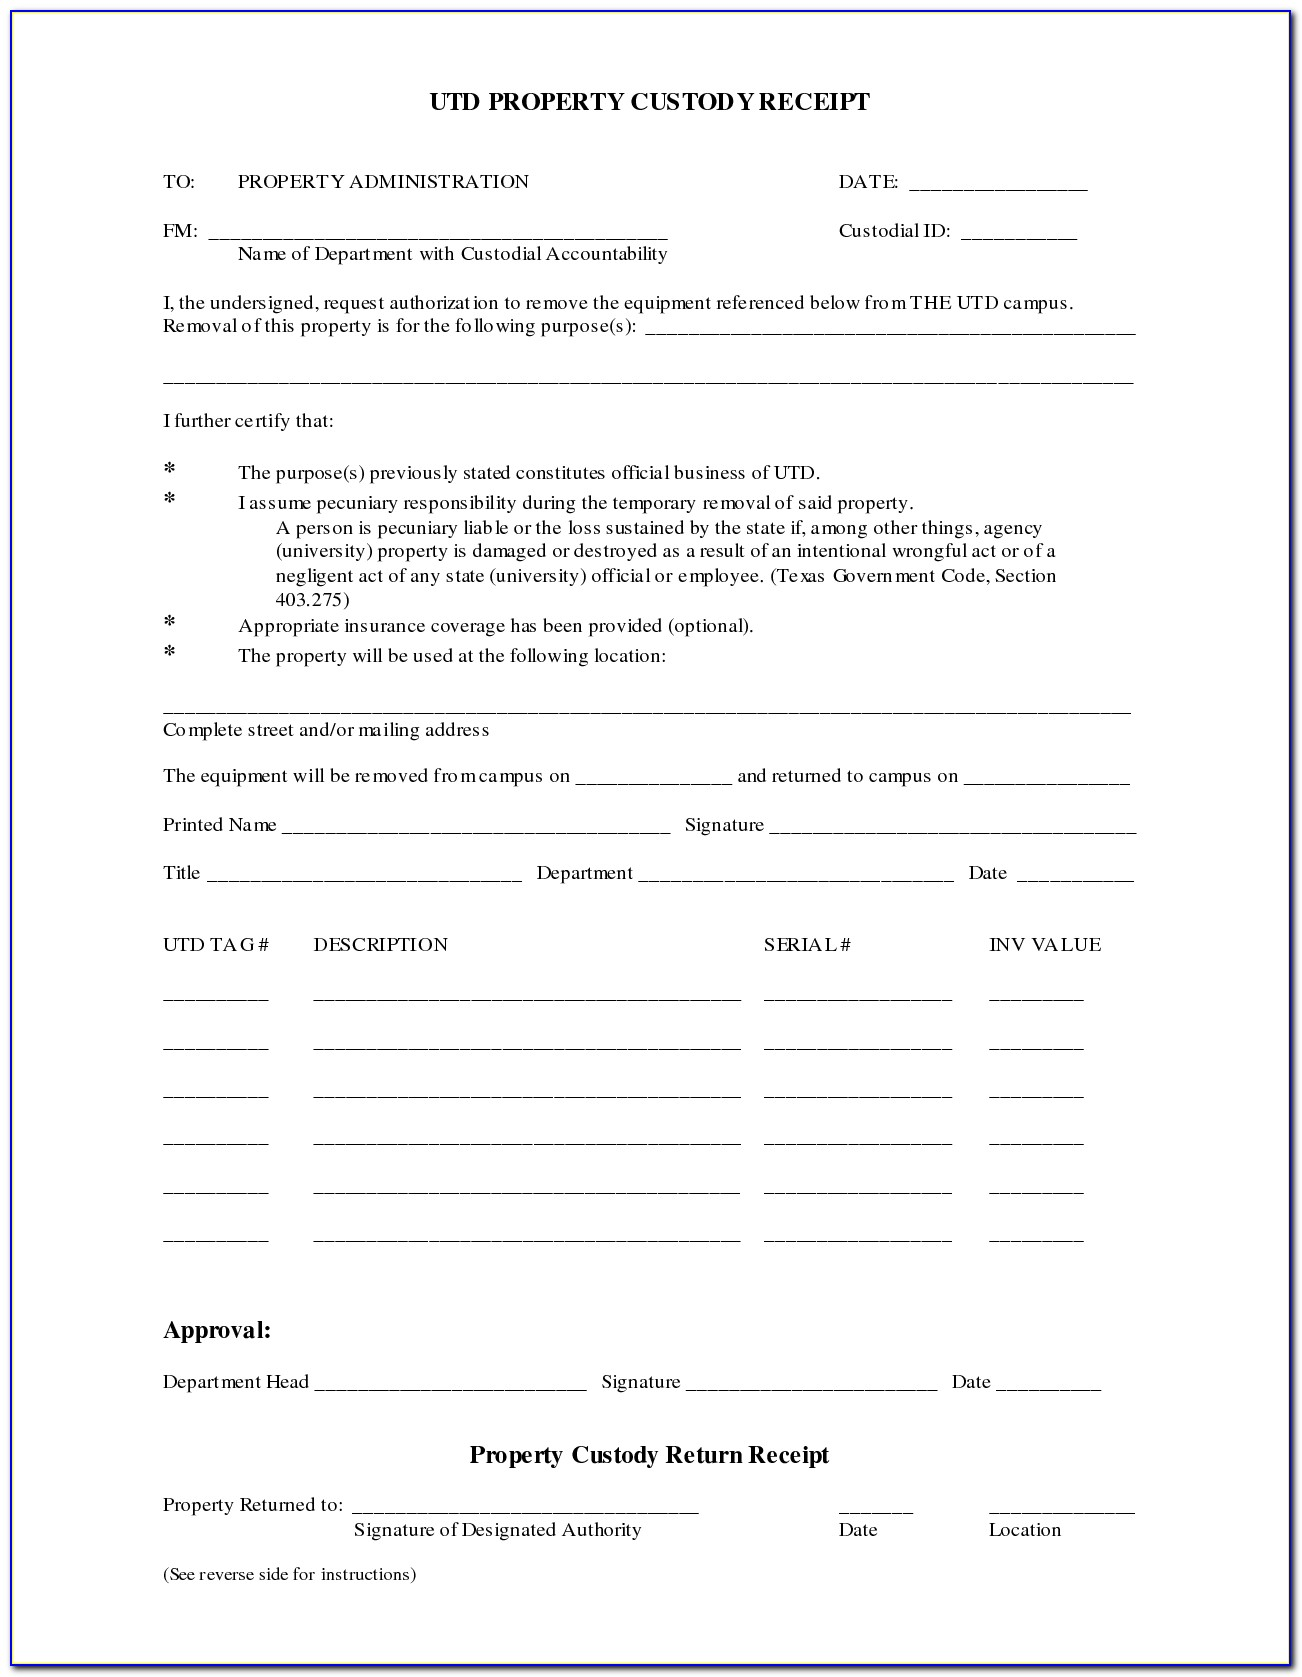 Legal Custody Forms Florida | Create Professional Resumes Online For Free Printable Legal Guardianship Forms